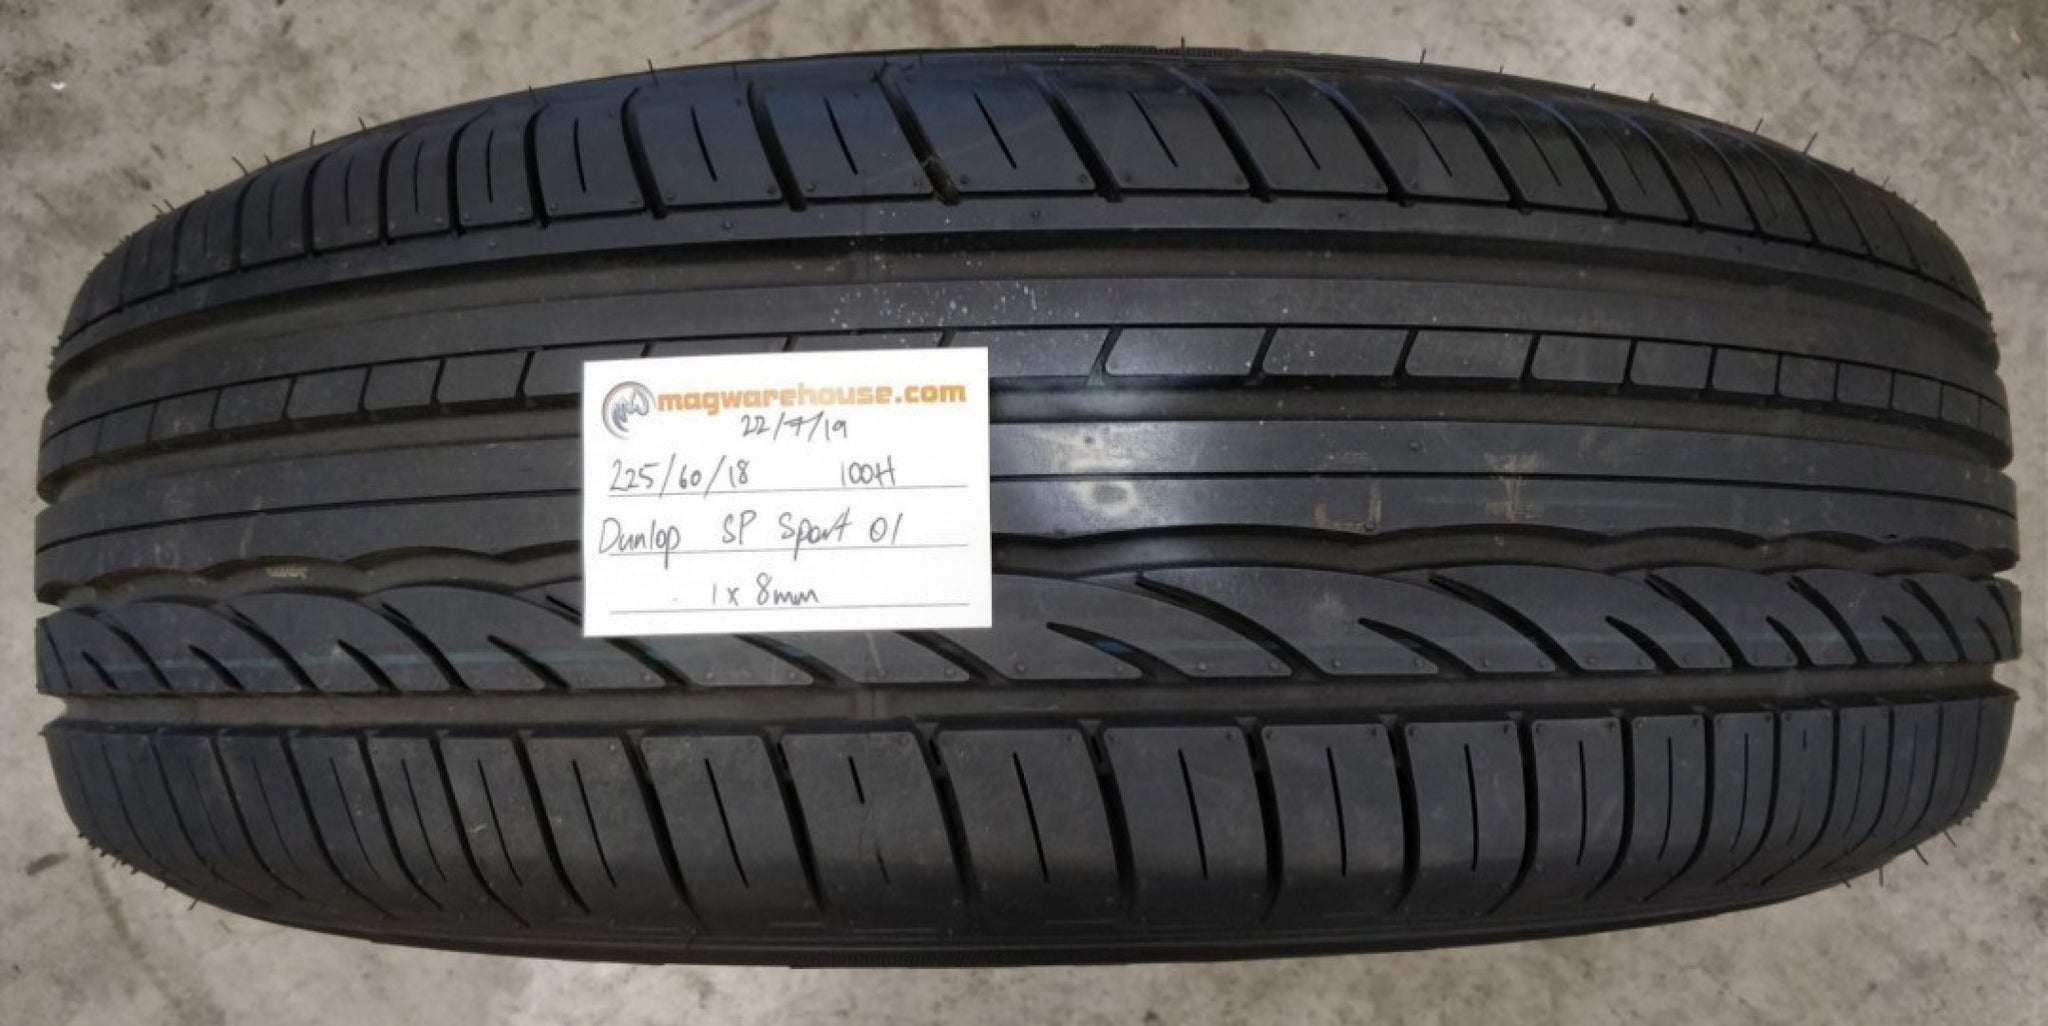 225/60R18 100H Dunlop SP Sport 01 1x8mm, FREE Fitting with the BUYNOW!!!